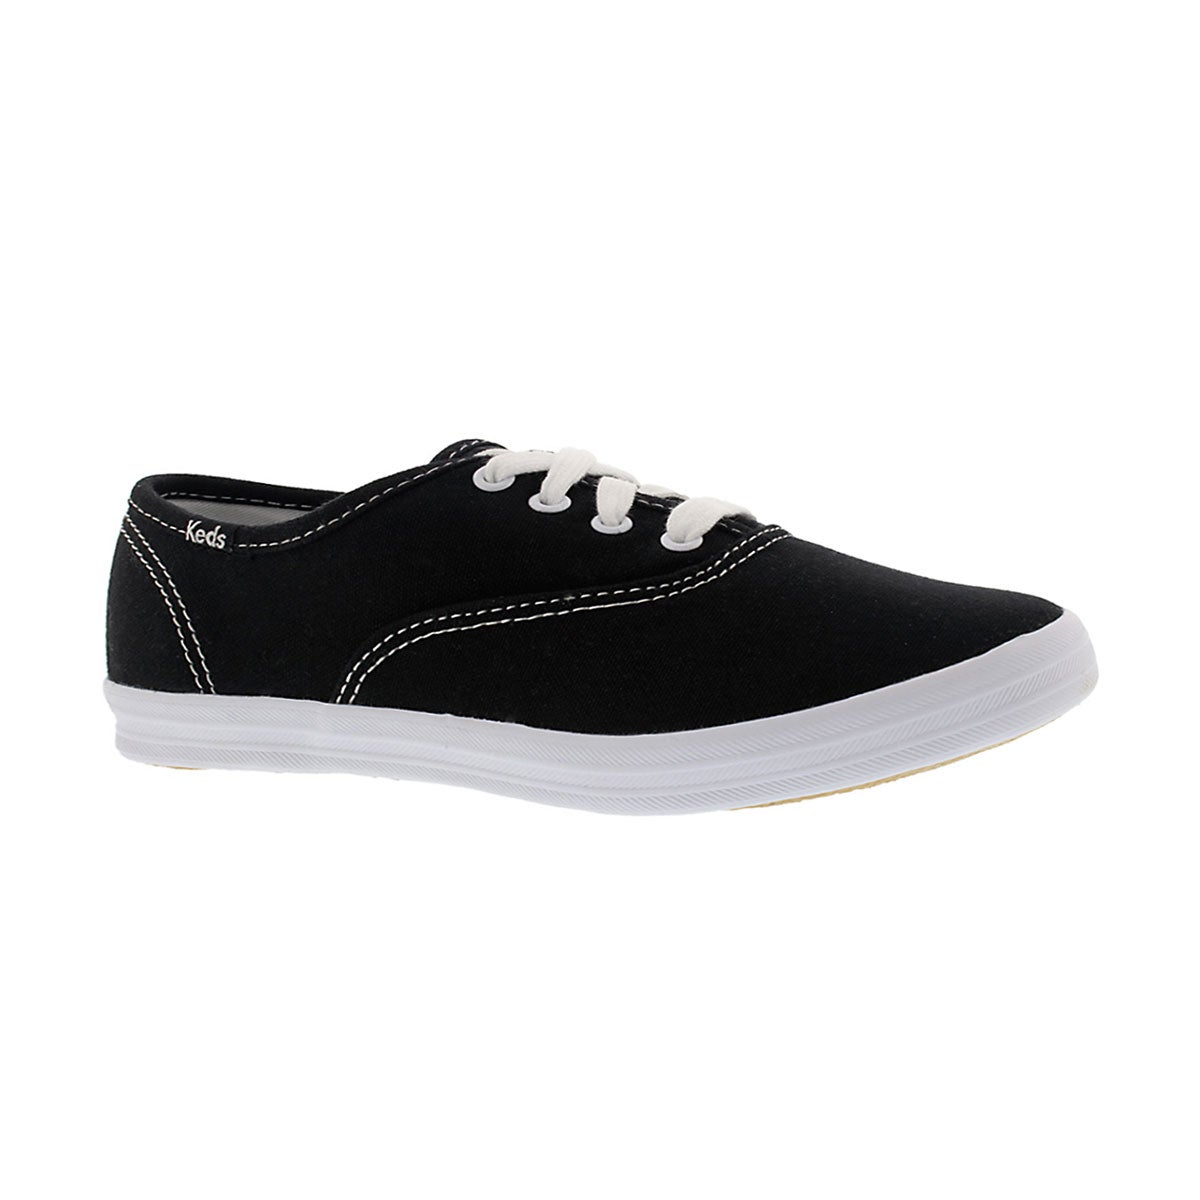 Girls' CHAMPION CVO black/white canvas sneakers